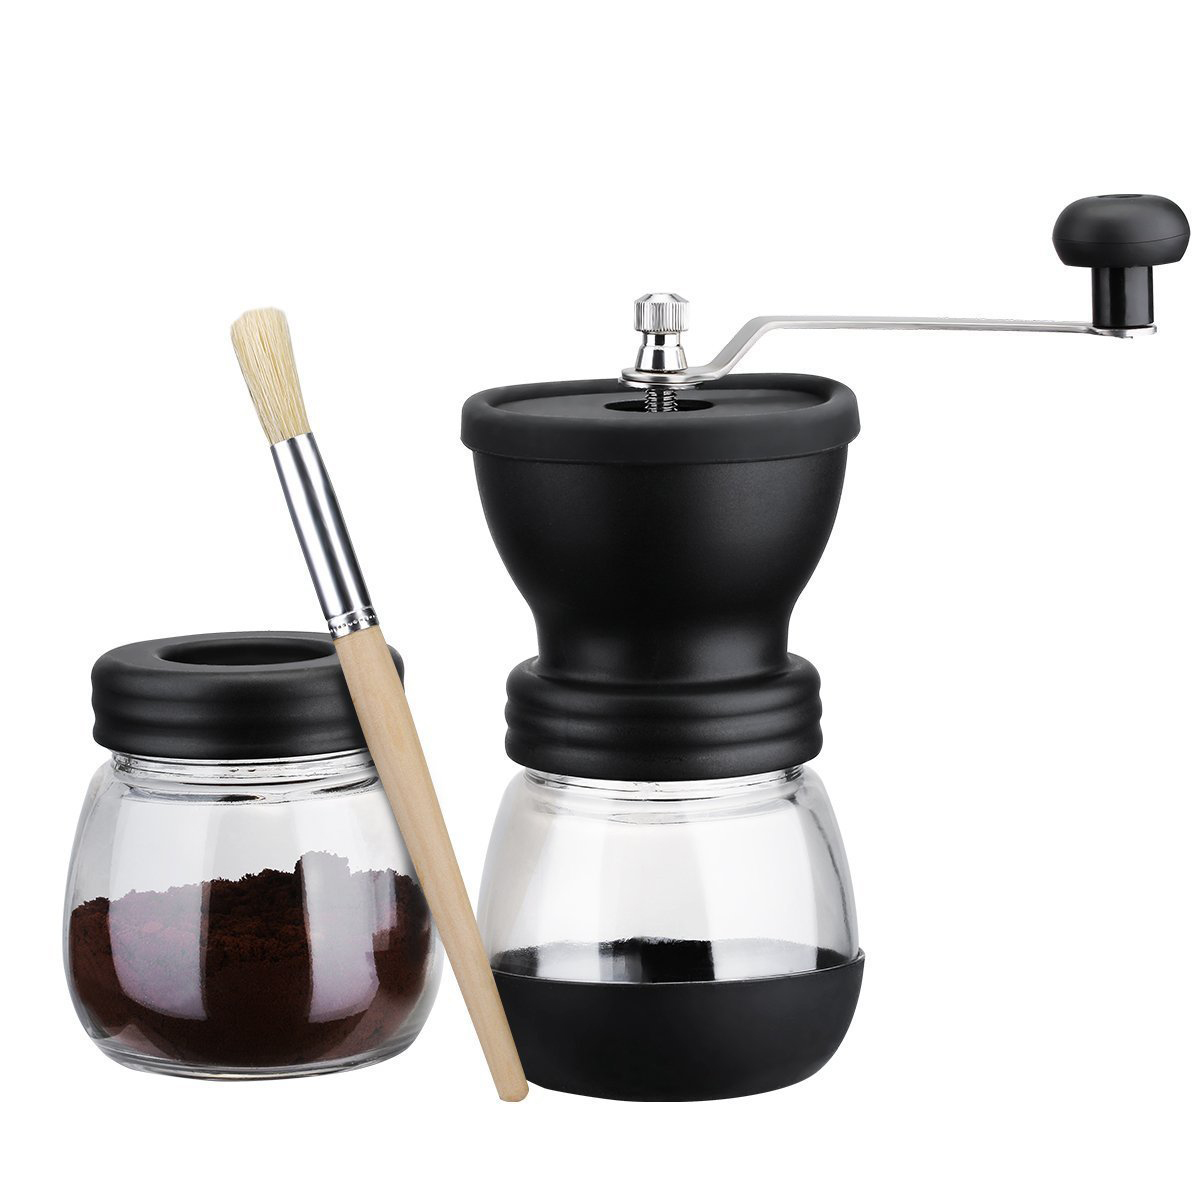 HARIO Manual Coffee Grinder With Storage Jar Soft Brush Conica Mini Coffee Milling Machine For Single Coffee